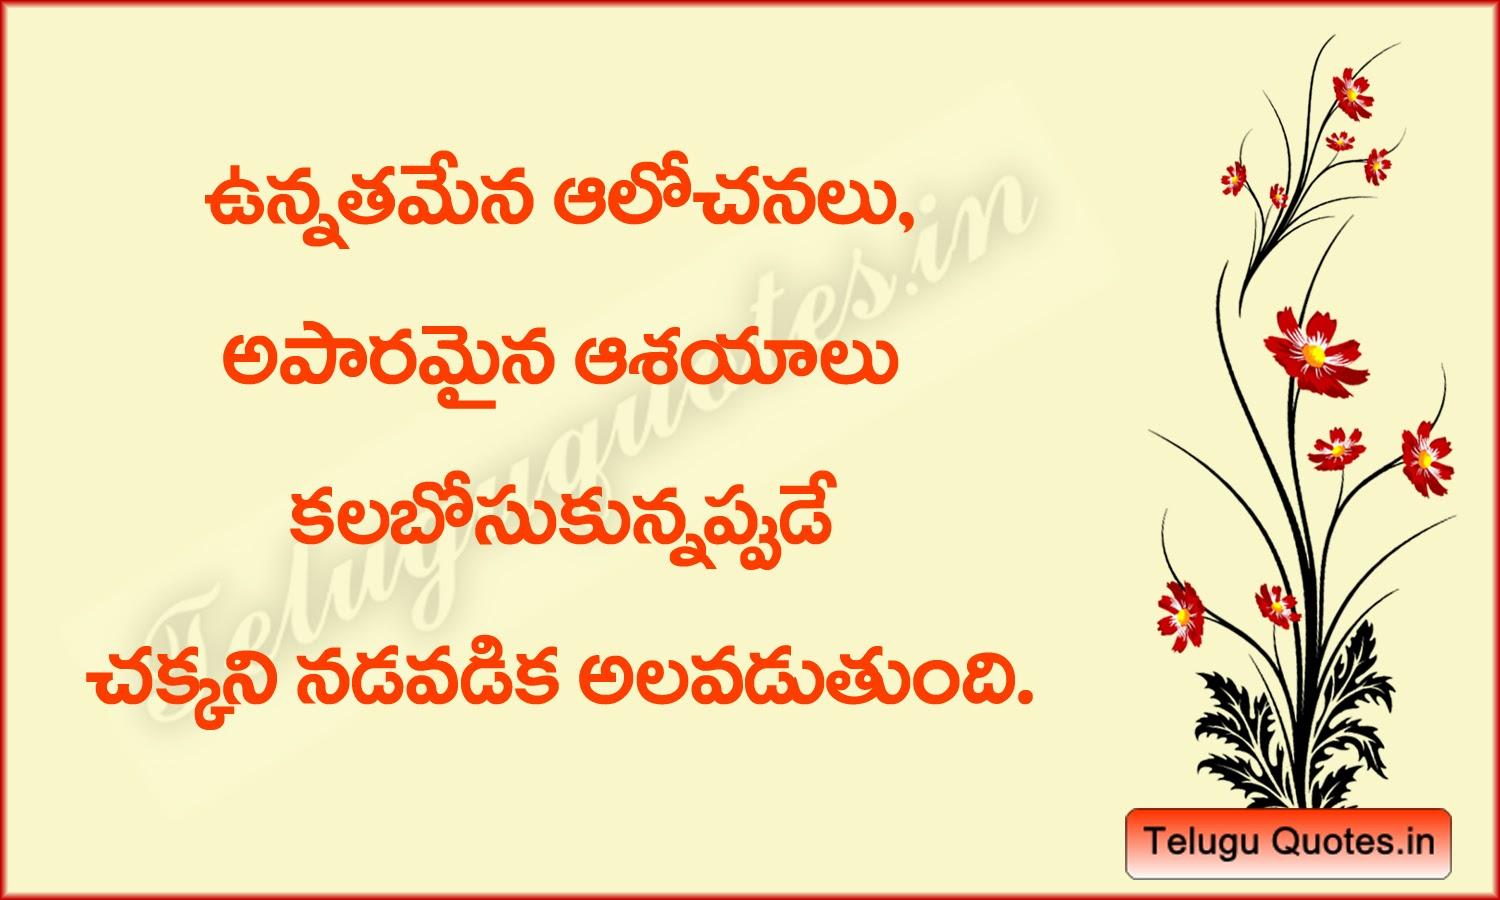 Latest Quotes About Life Awesome Best Life Quotes In Telugu  Telugu Quotes.in